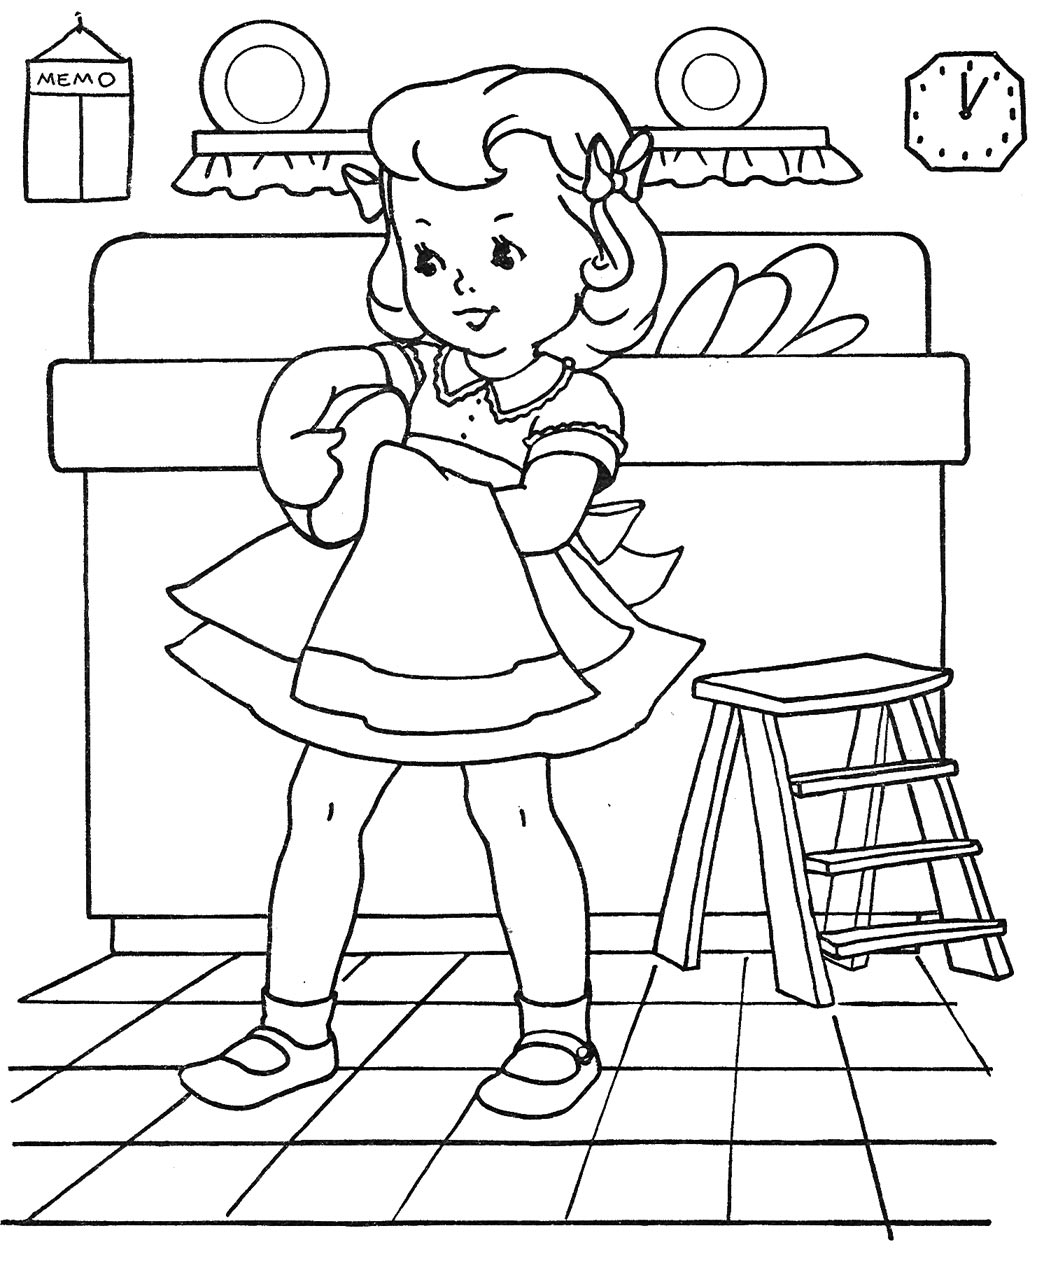 cassic art coloring pages - photo#10